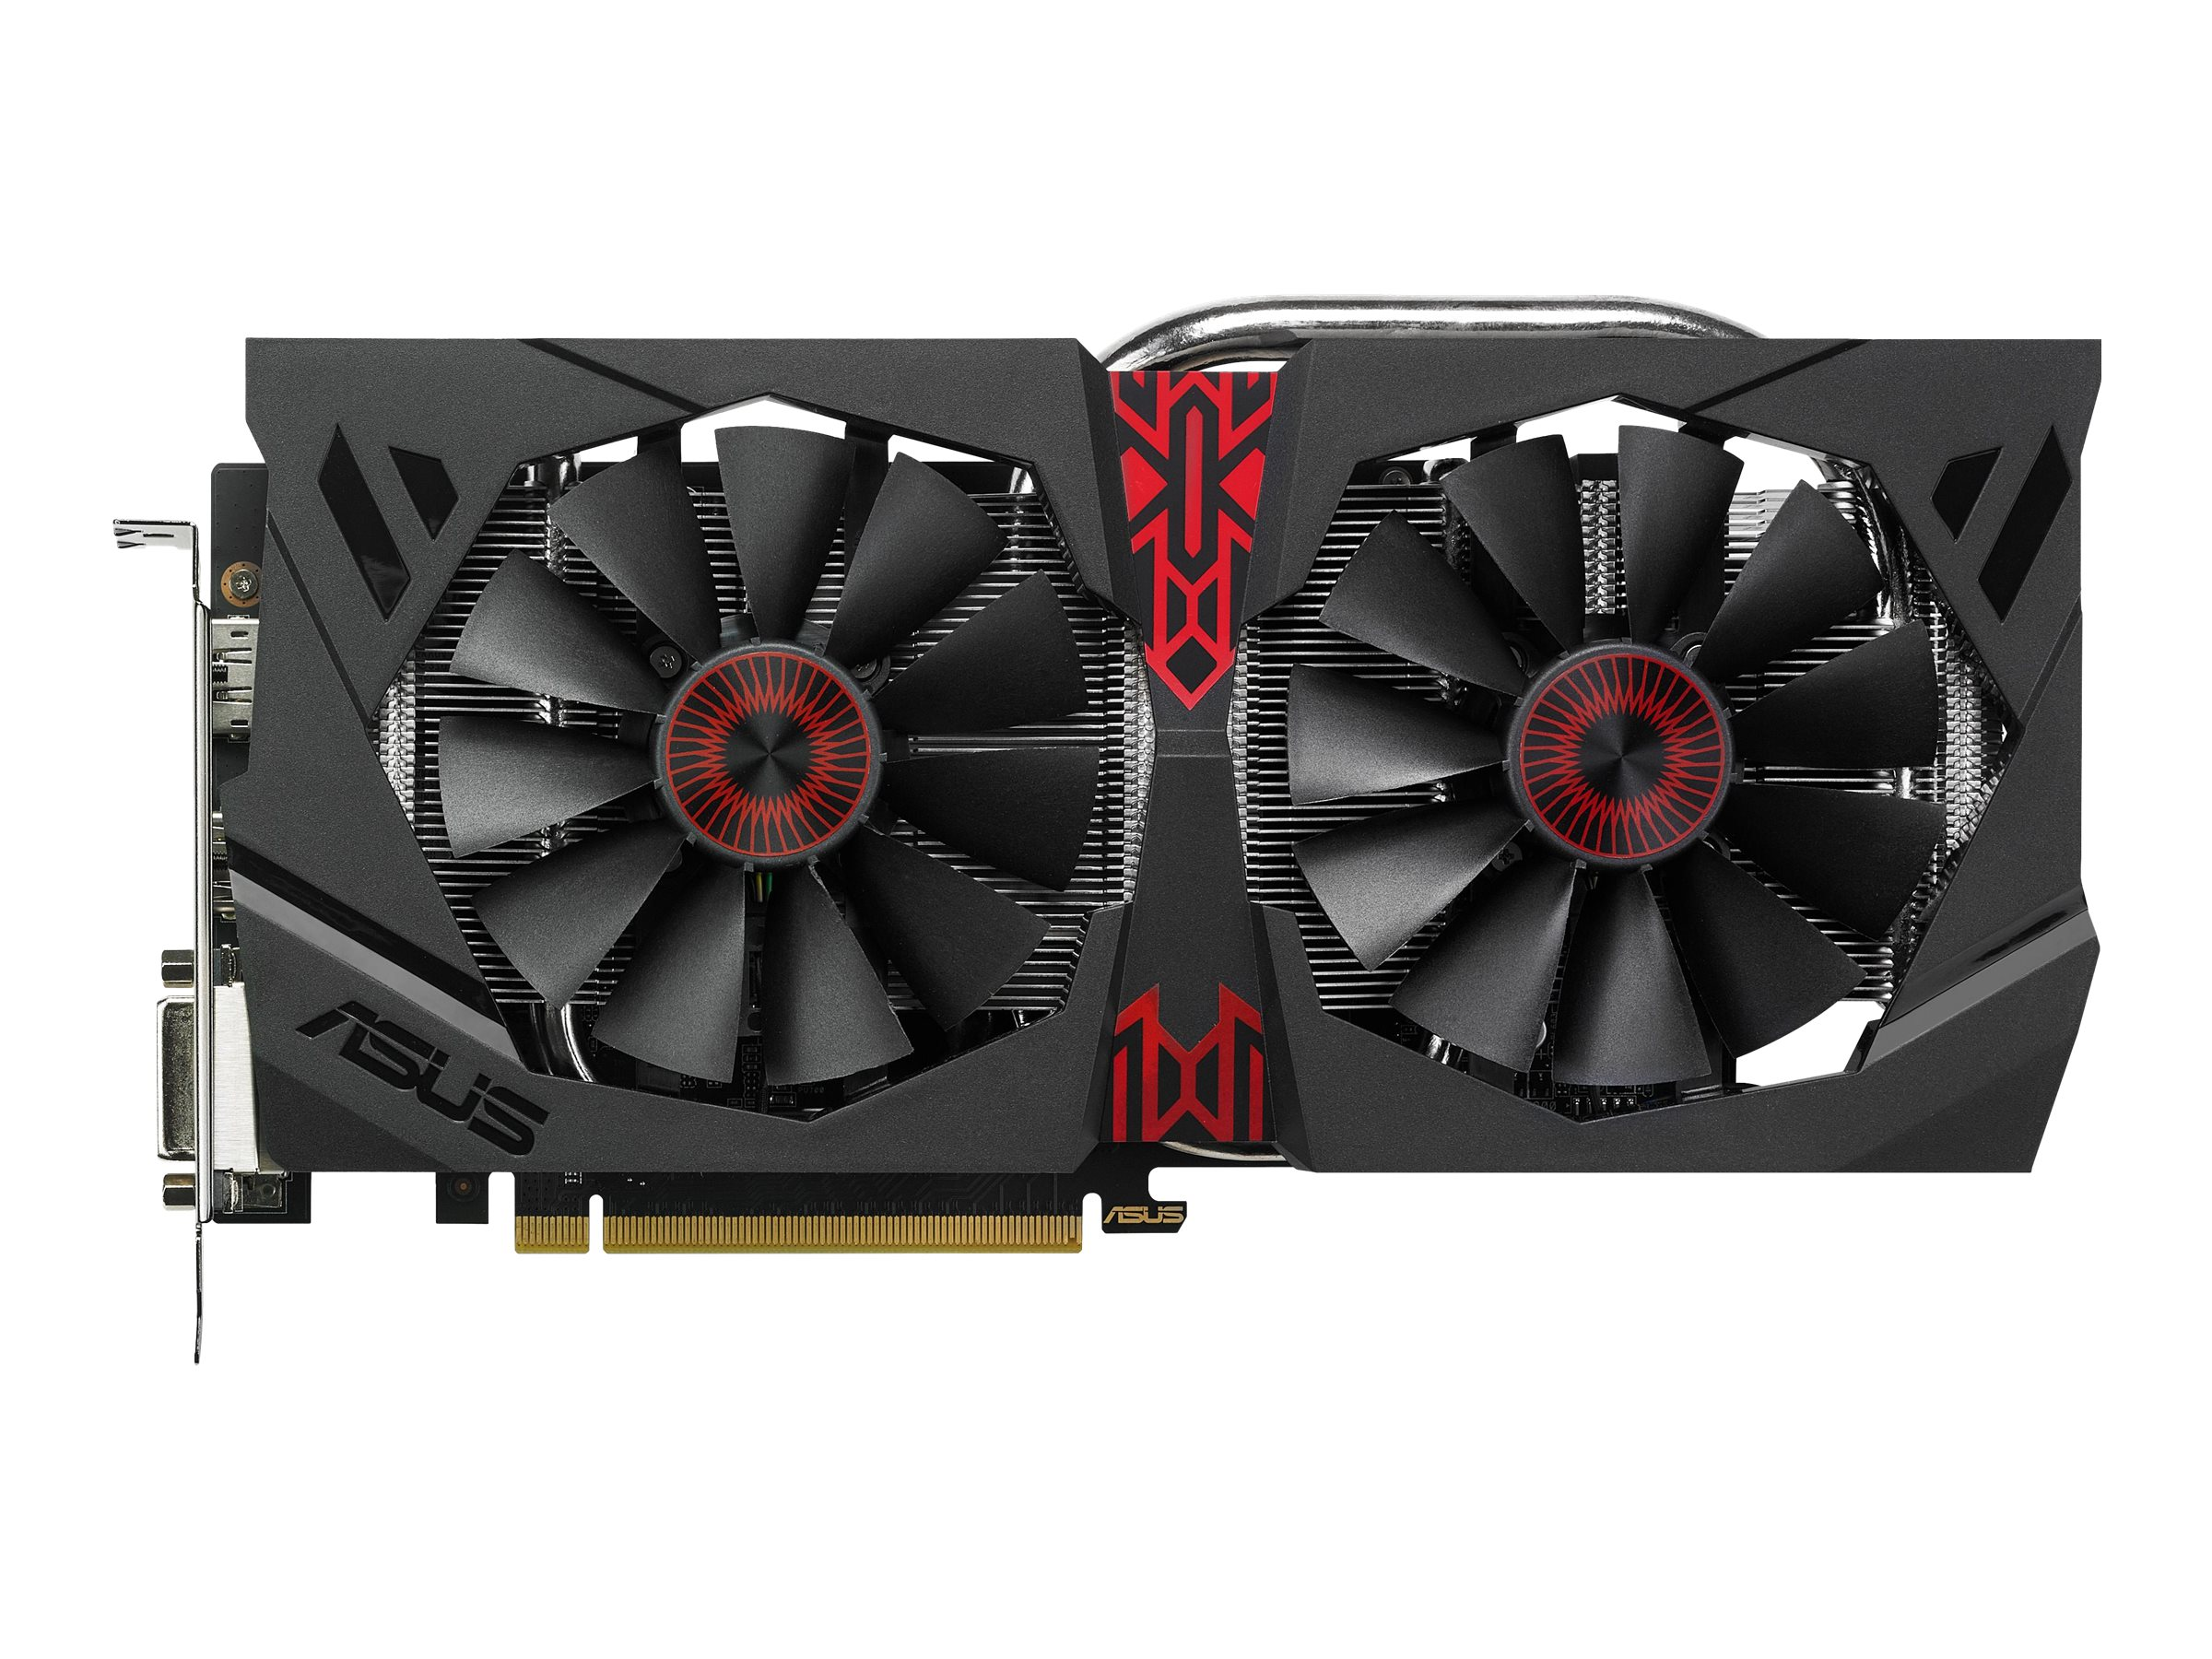 Asus STRIX R9 380 PCIe 3.0 Overclocked Graphics Card, 4GB GDDR5